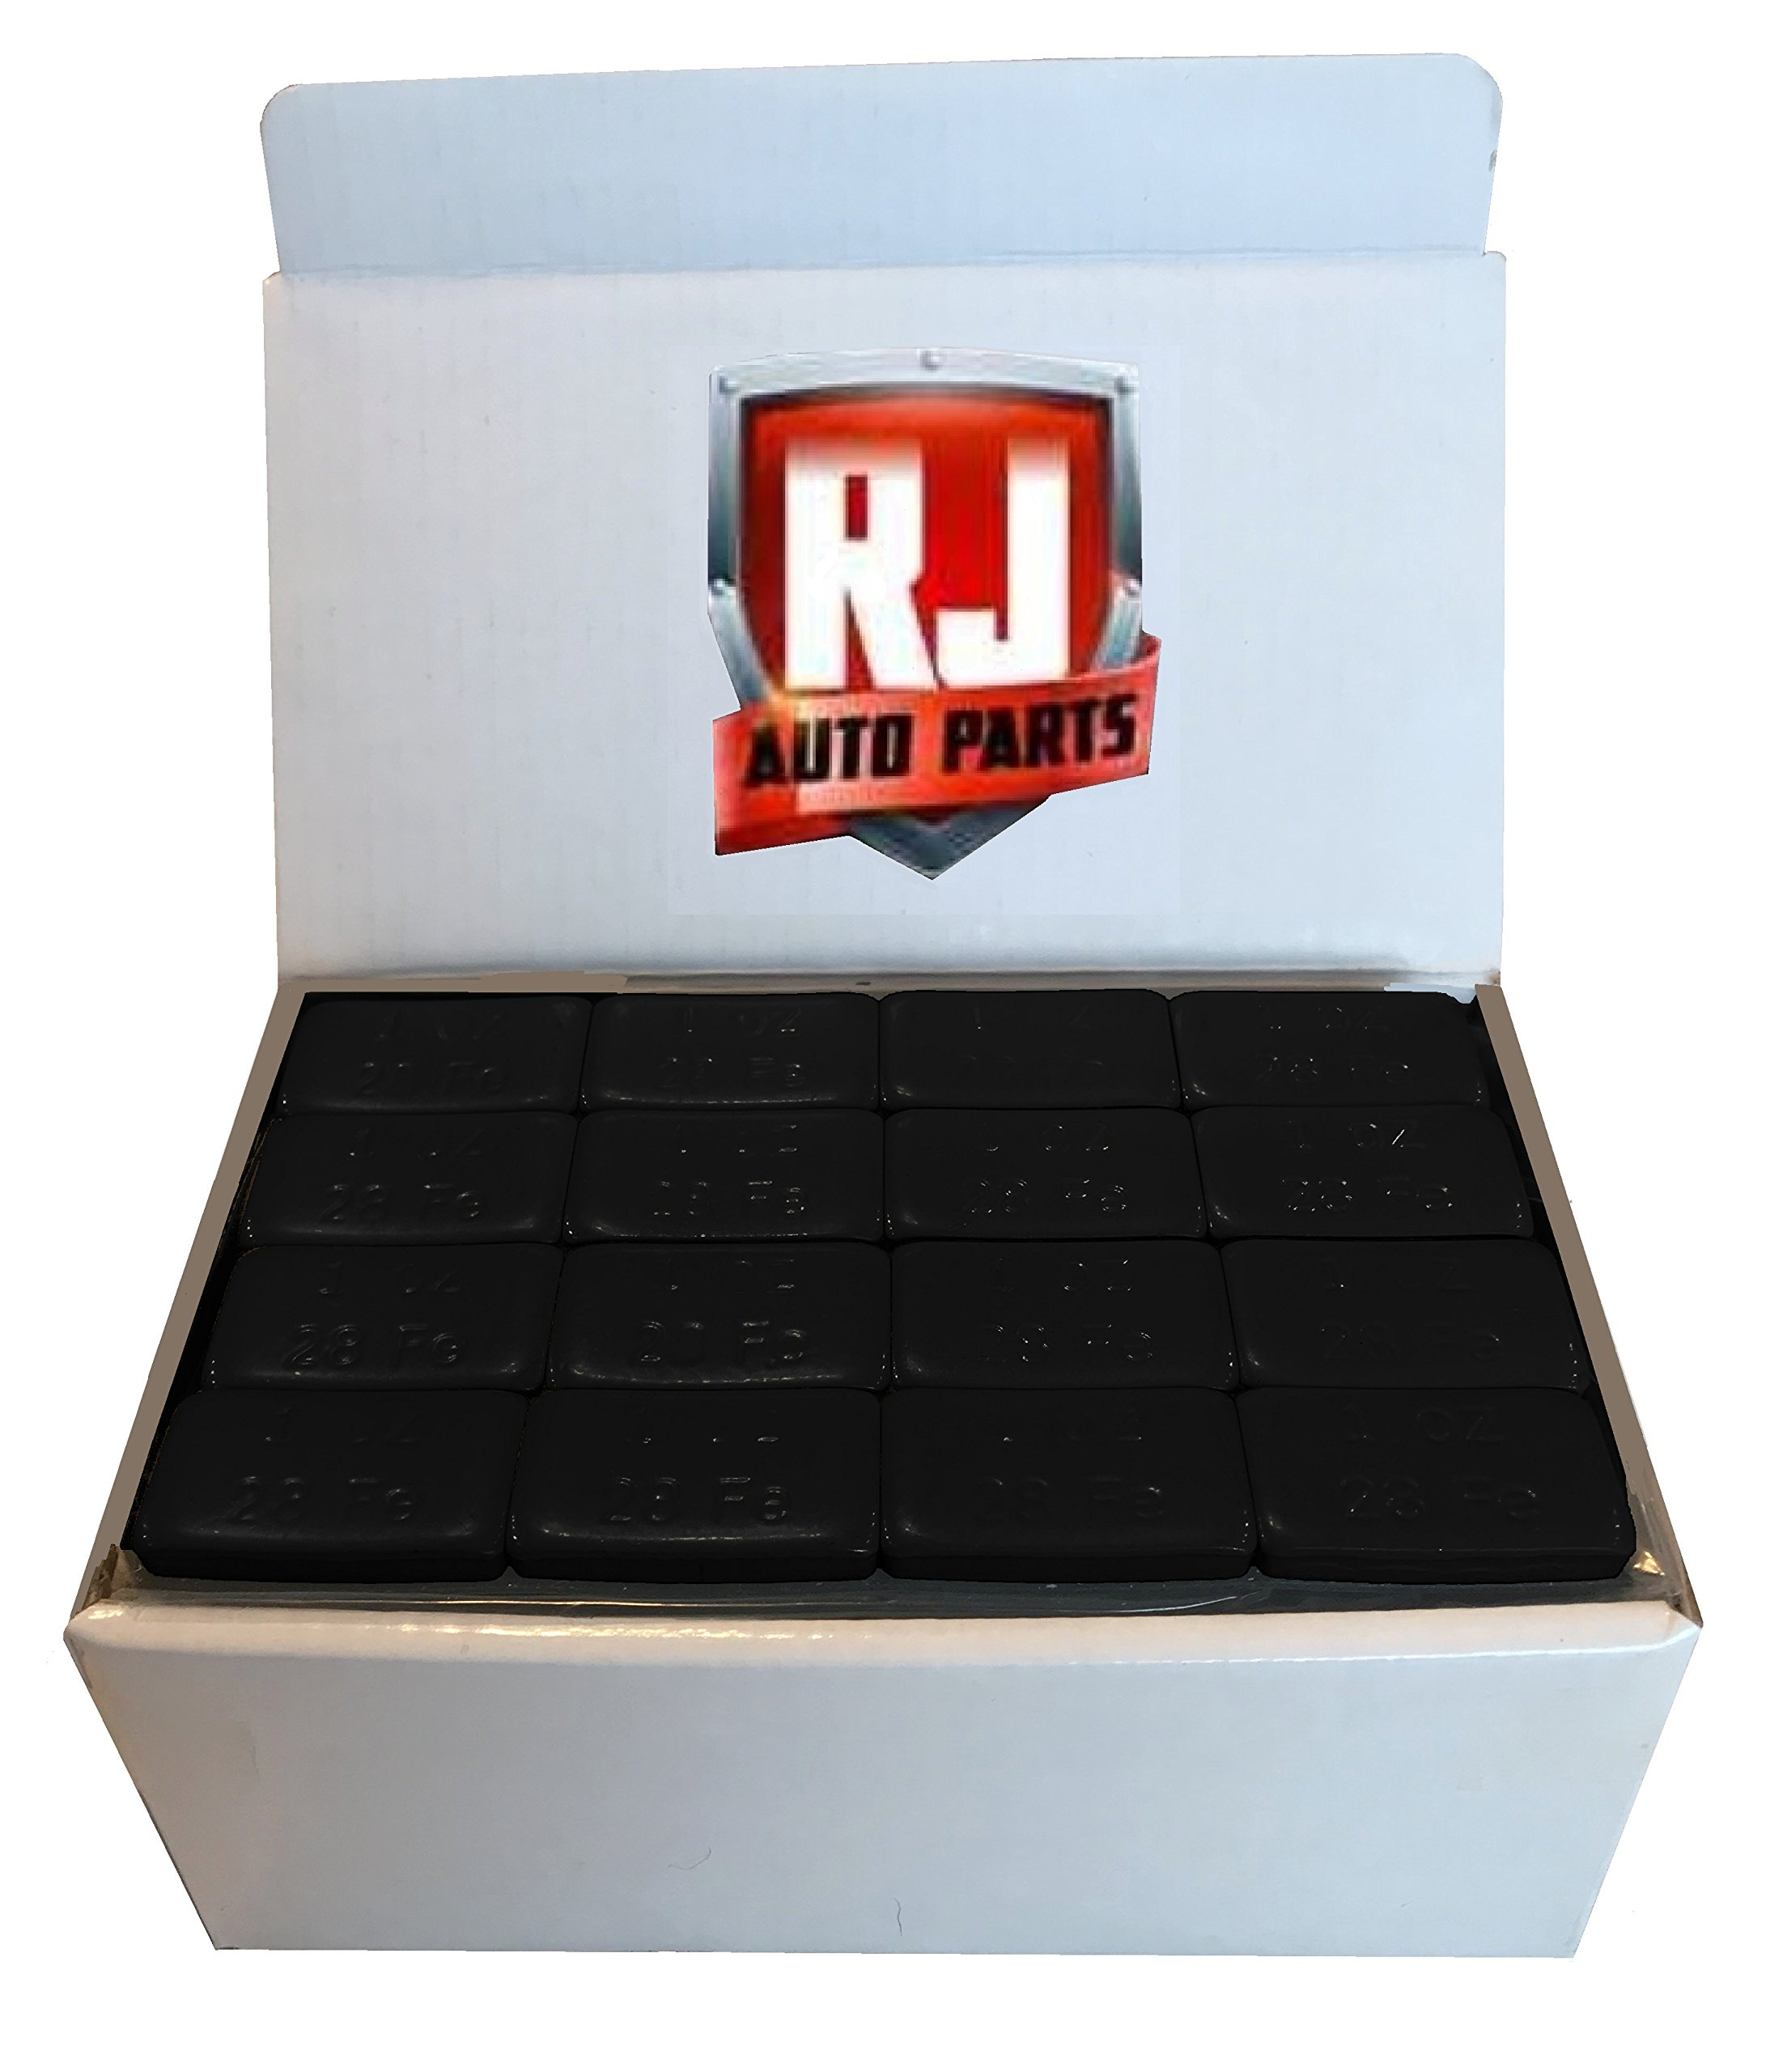 2 Boxes Wheel Weights, Black 1 oz, Stick-on Adhesive Tape, Lead Free, (18 lbs) 288 Pieces by RJ Auto Parts